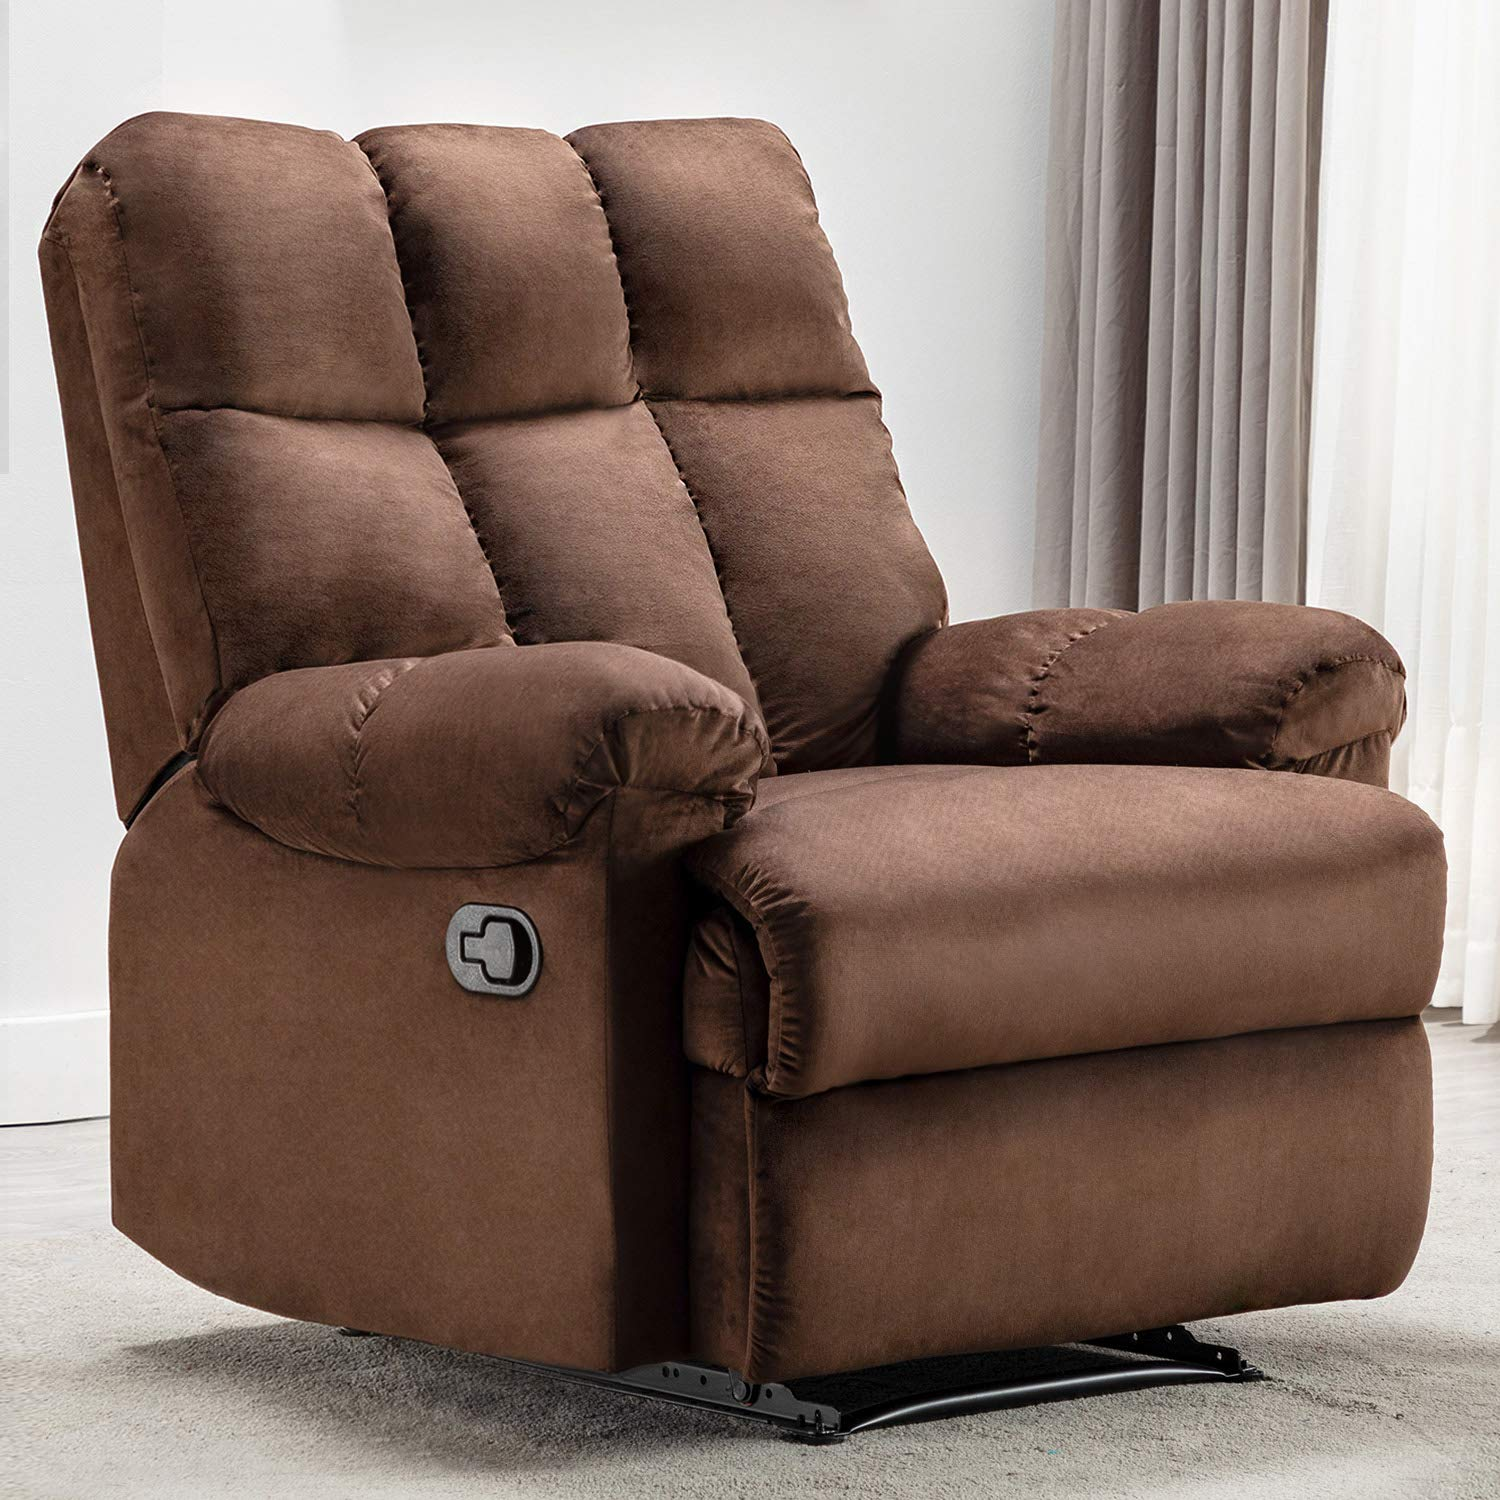 Bonzy Home Overstuffed Fabric Recliner Chair - Heavy Duty Manual Recliner - Home Theater Seating - Bedroom & Living Room Chair Recliner Sofa (Chocolate) by Bonzy Home